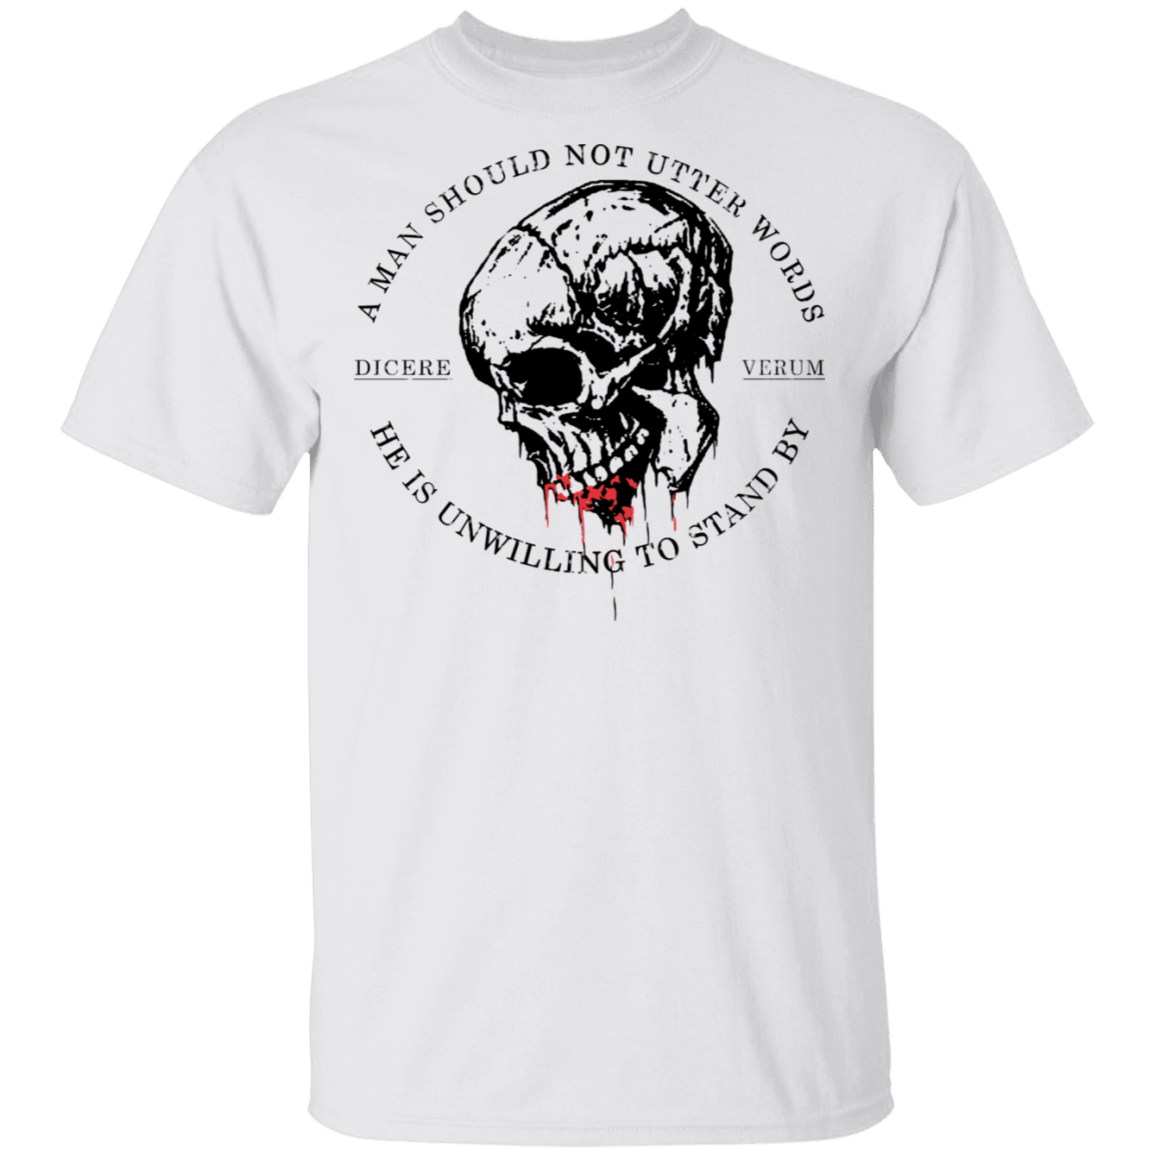 A Man Should Not Utter Words He Is Unwilling To Stand By Dicere Verum T-Shirts, Hoodies 1049-9974-86055408-48300 - Tee Ript